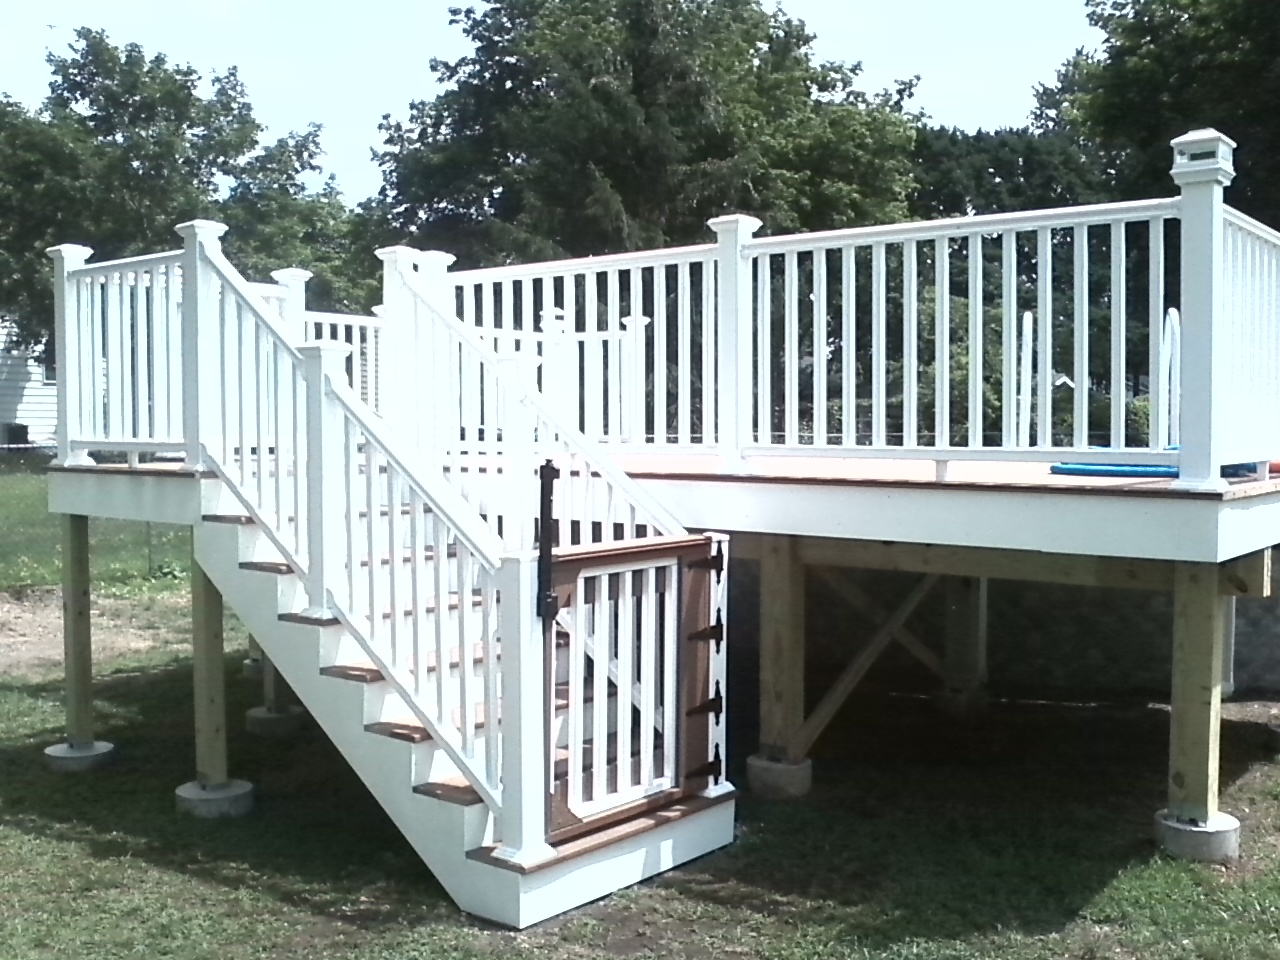 Trex Composite Decking With Severe Weather Railing And Clad Frame Wrapping